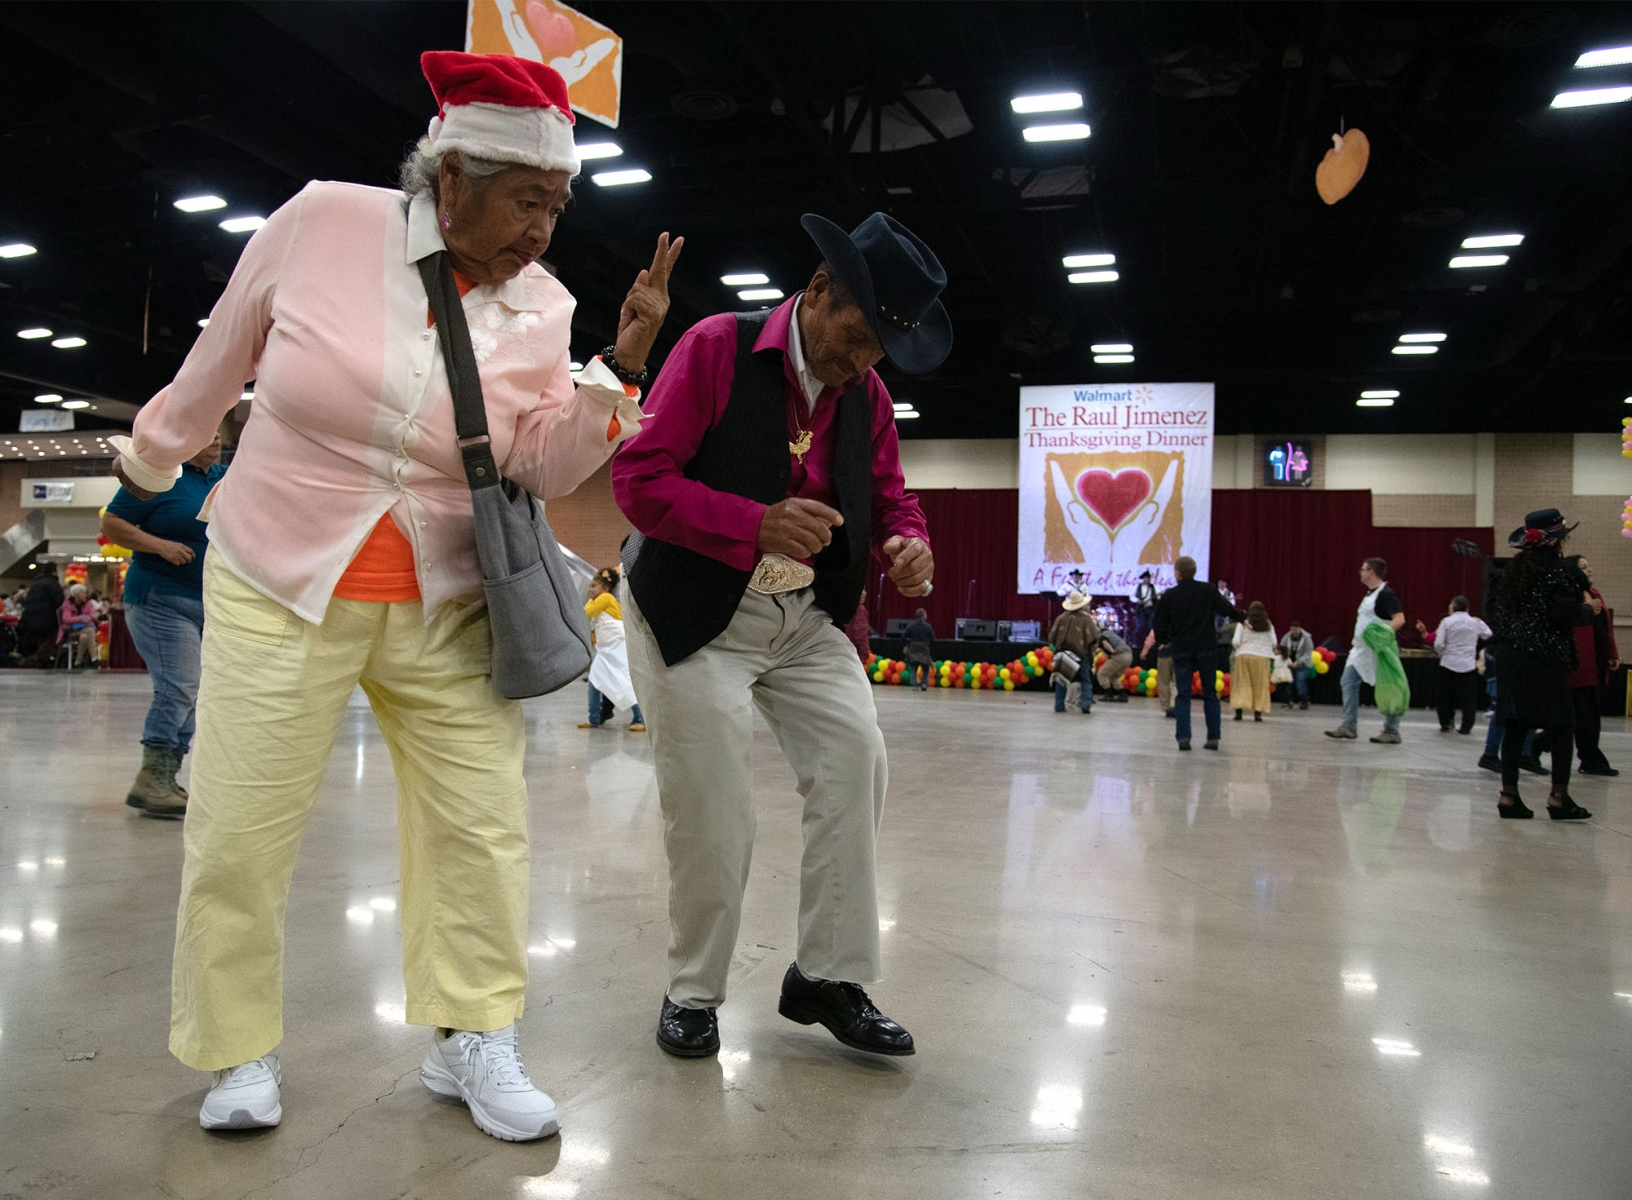 Maria Molina and Jose Salinas dance during the Raul Jimenez Thankgiving Dinner Thursday at the Henry B. Gonzalez Convention Center. <em><b>Photo by V.Finster | Heron</b></em>